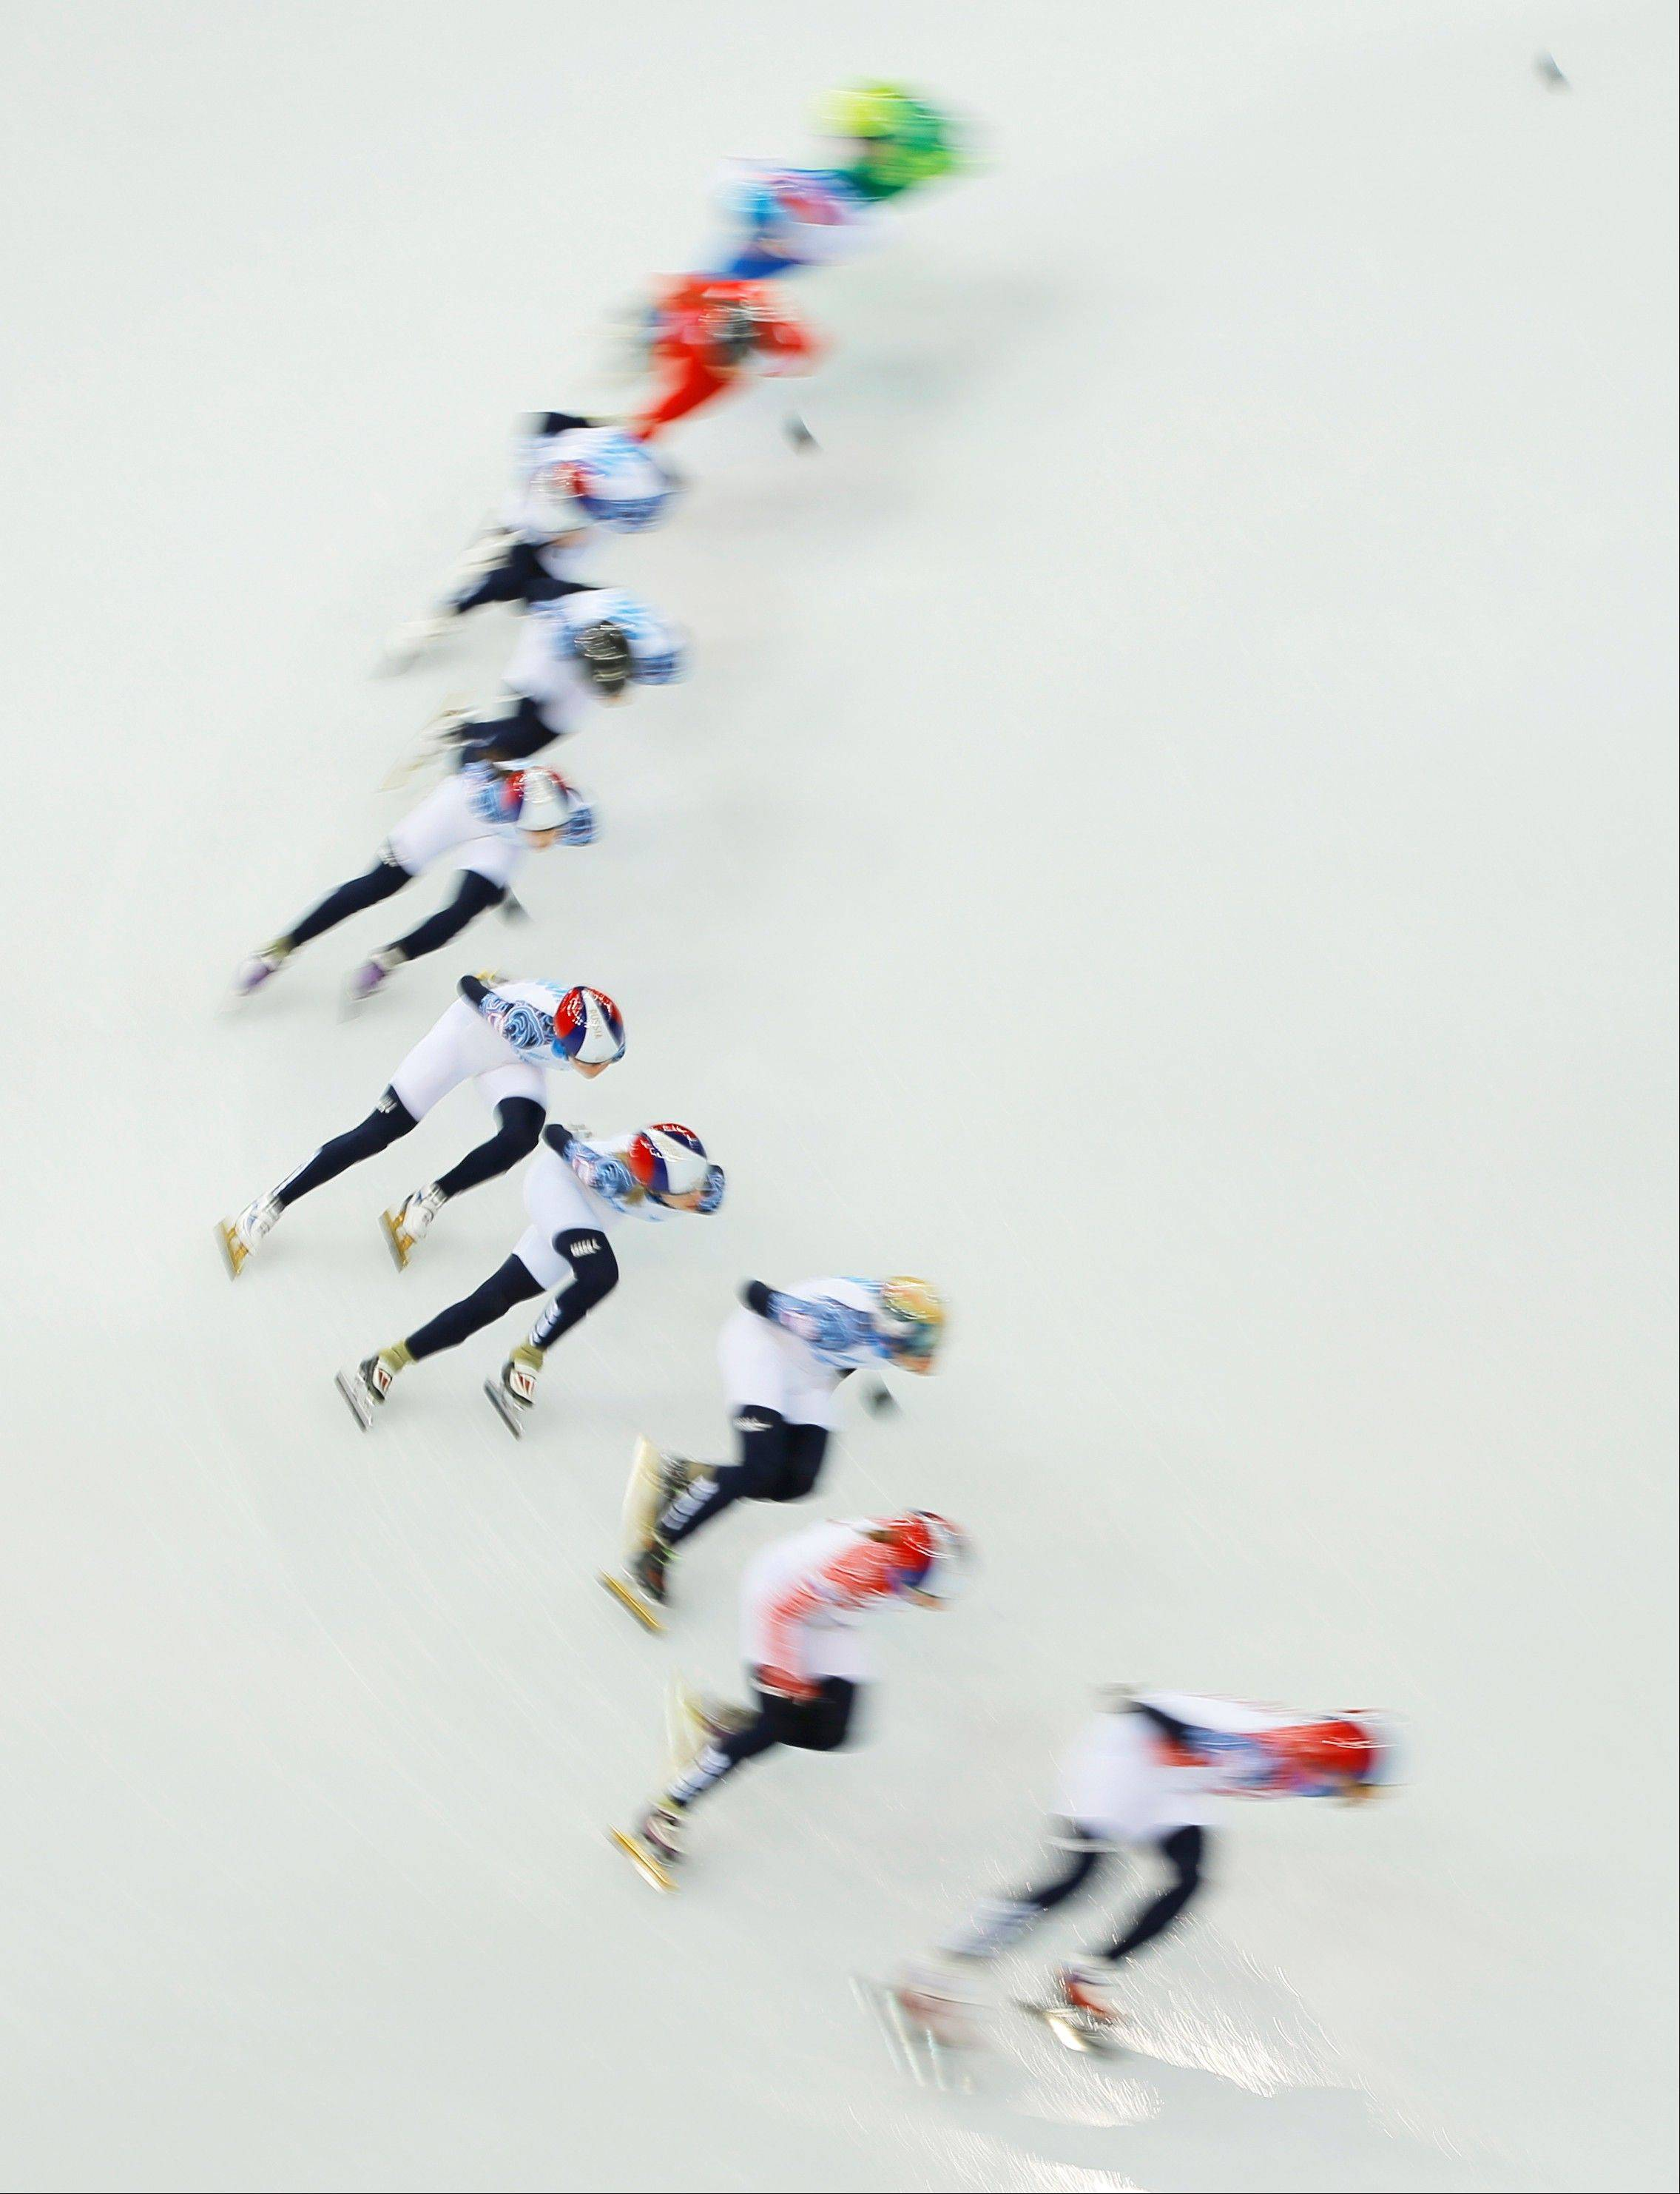 Skaters from Russia, Poland and Lithuania practice during a short track speedskating practice session at the Iceberg Skating Palace ahead of the 2014 Winter Olympics, Thursday, Feb. 6, 2014, in Sochi, Russia. (AP Photo/Vadim Ghirda)